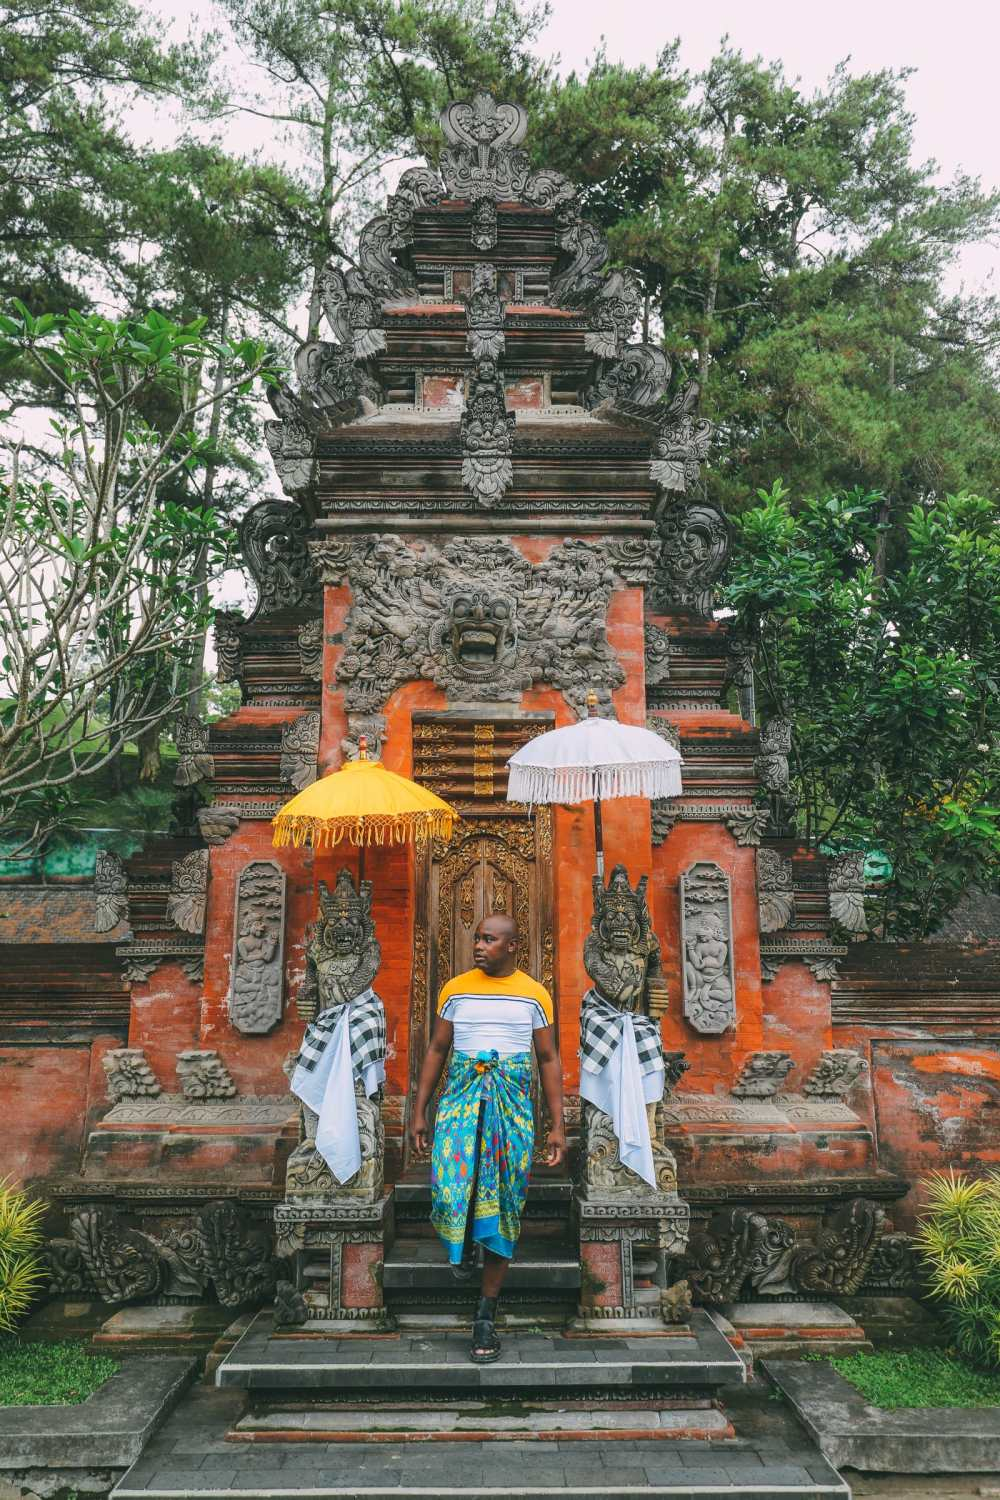 Finding A Secret Waterfall in Bali, Tirta Empul Temple And Mount Batur Volcano (2)